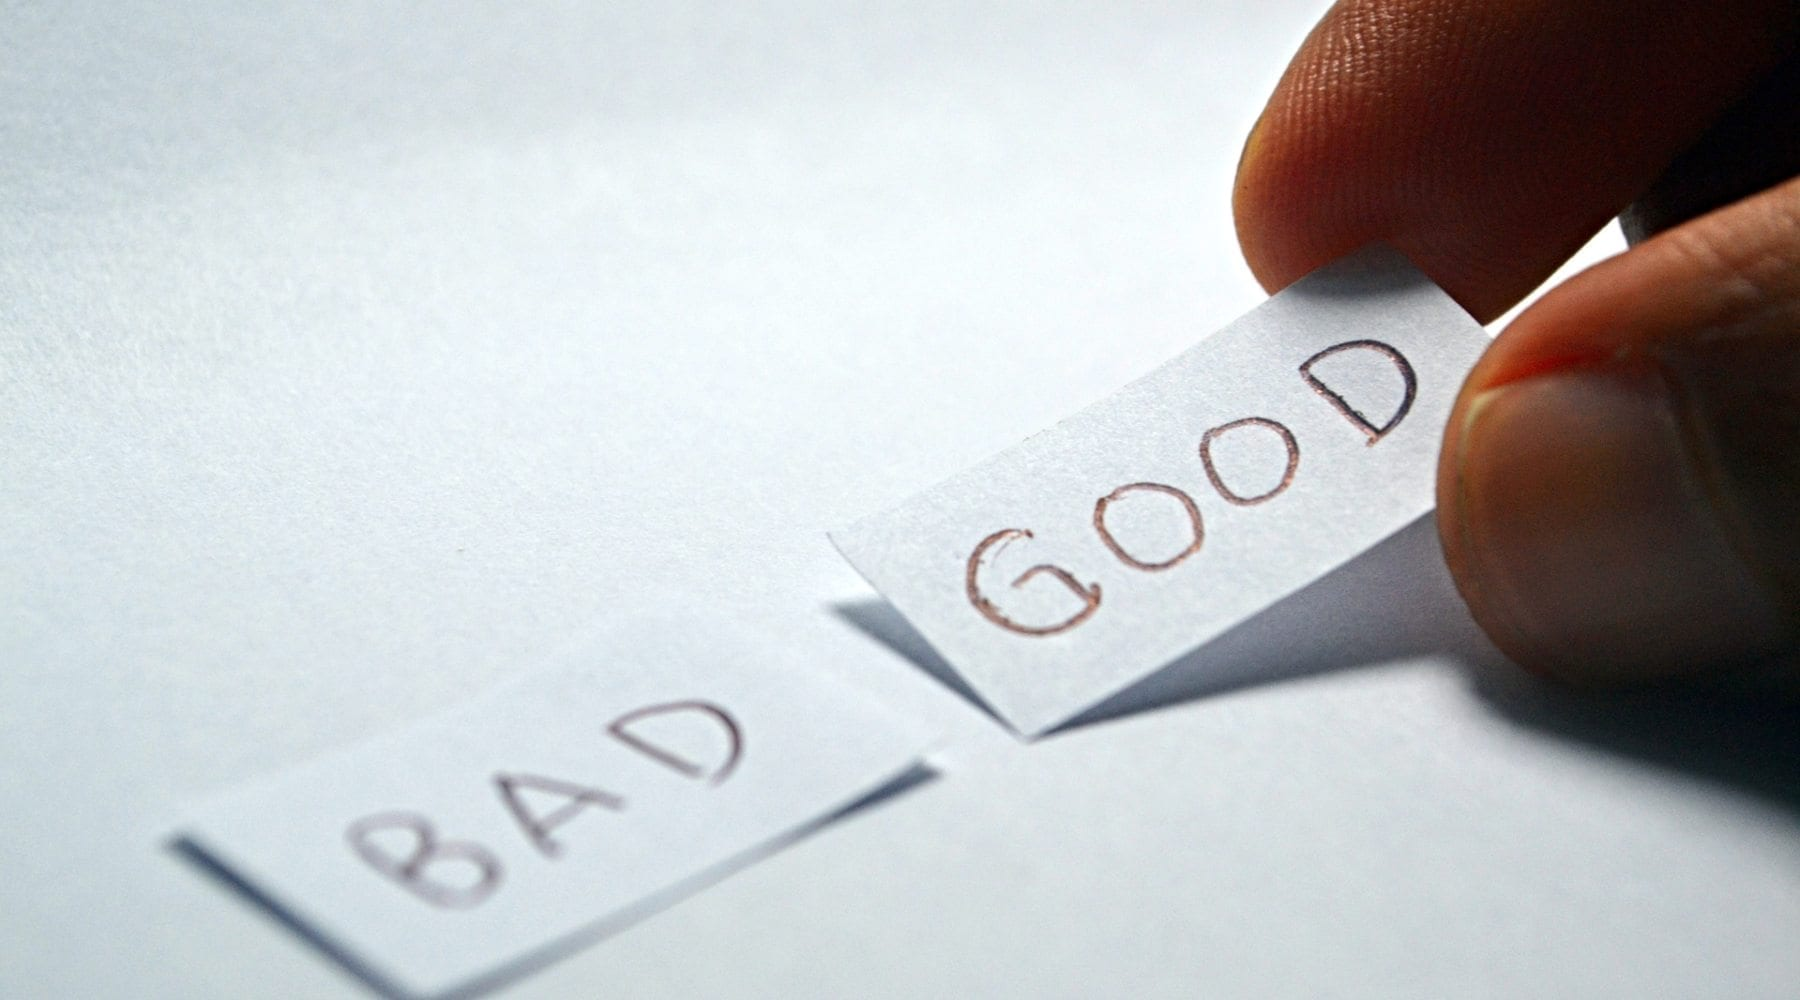 Two slips of paper with 'bad' and 'good' written on them